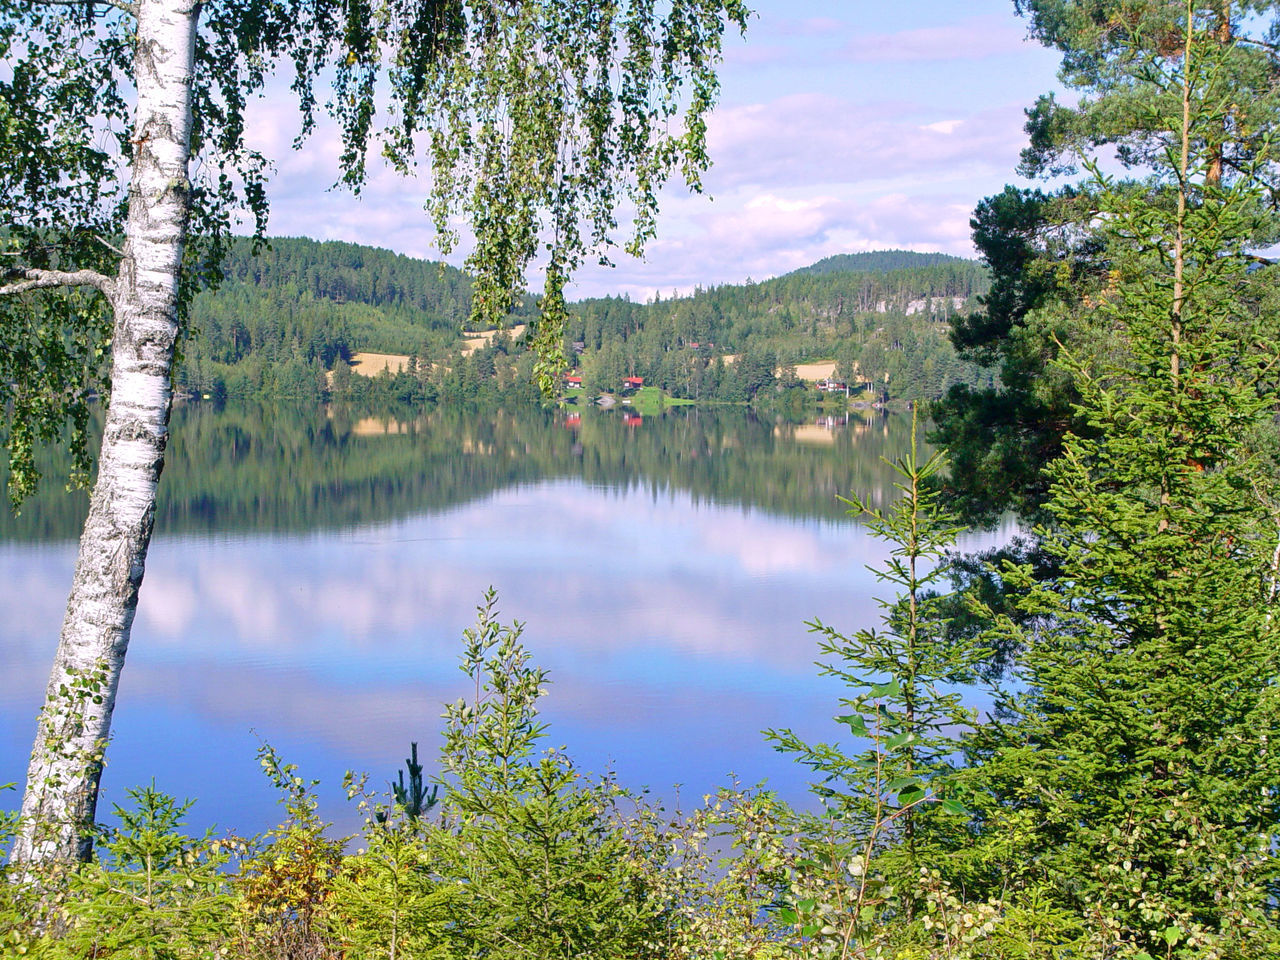 SCENIC VIEW OF LAKE AMIDST TREES AGAINST SKY